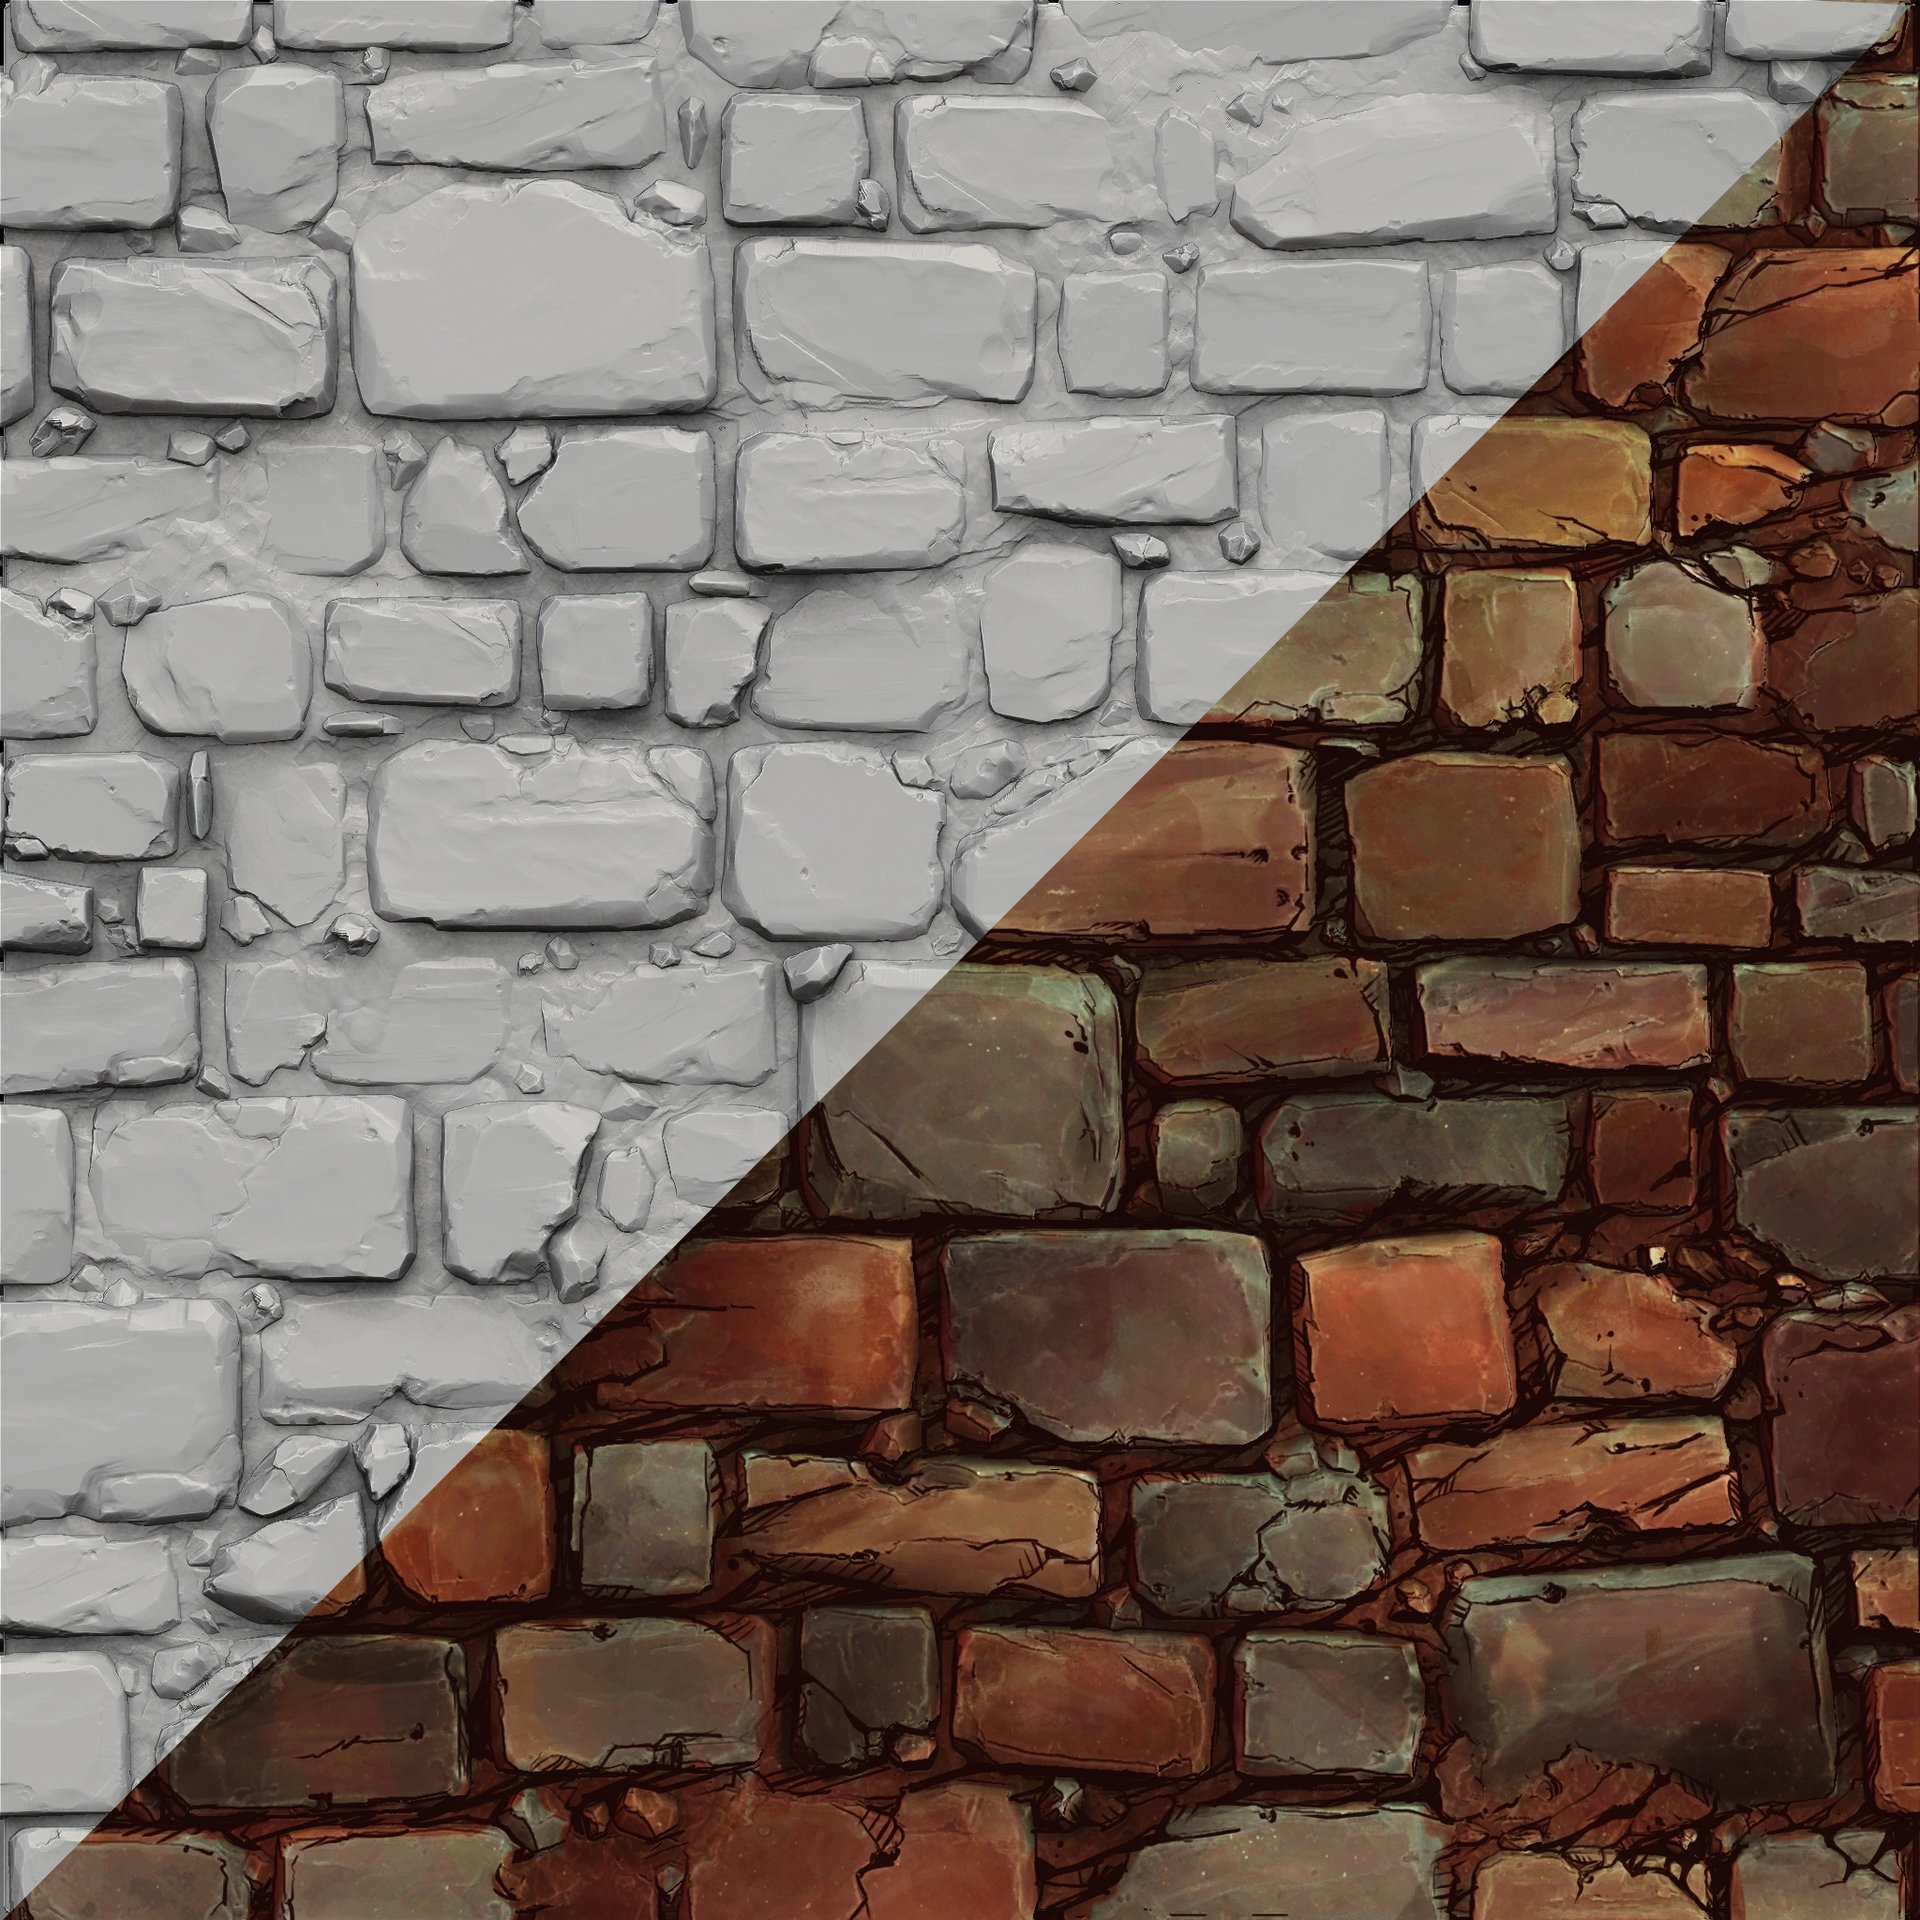 Most Current 3d Brick Wall Art Within Artstation – Brick Wall Sculpt And Comic Style Texture, Jesse (View 9 of 15)